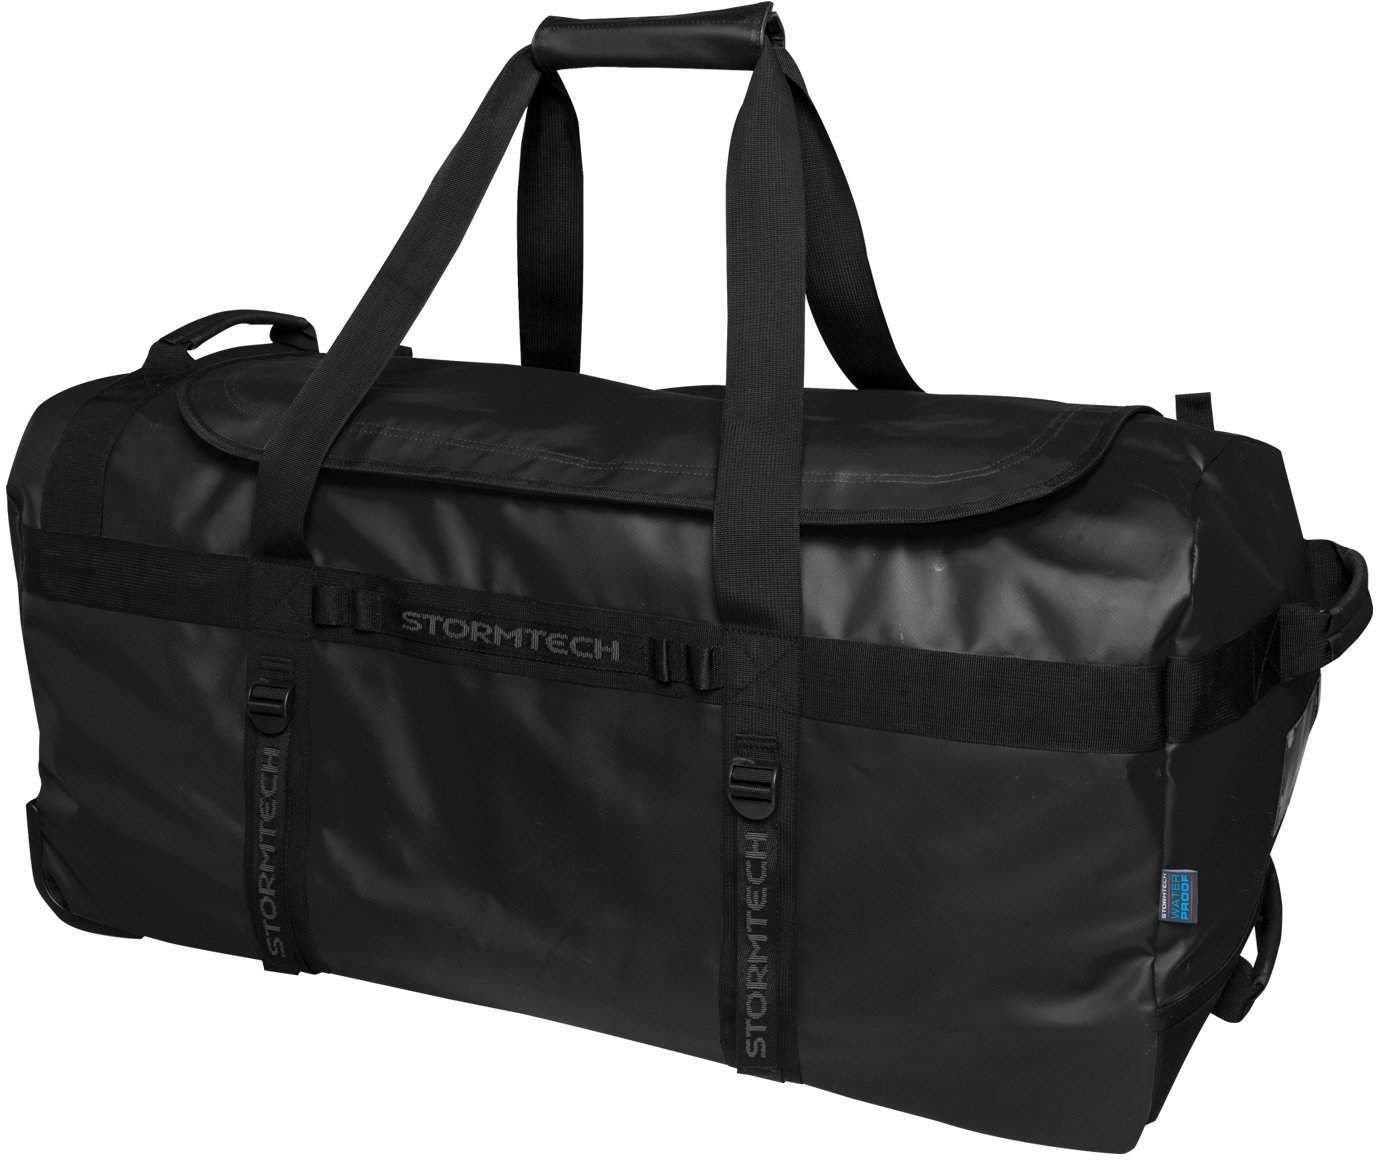 5a9f70d6496 TRIDENT WATERPROOF ROLLING EQUIPMENT BAG - GBW-3-ONE SIZE-BLACK ...